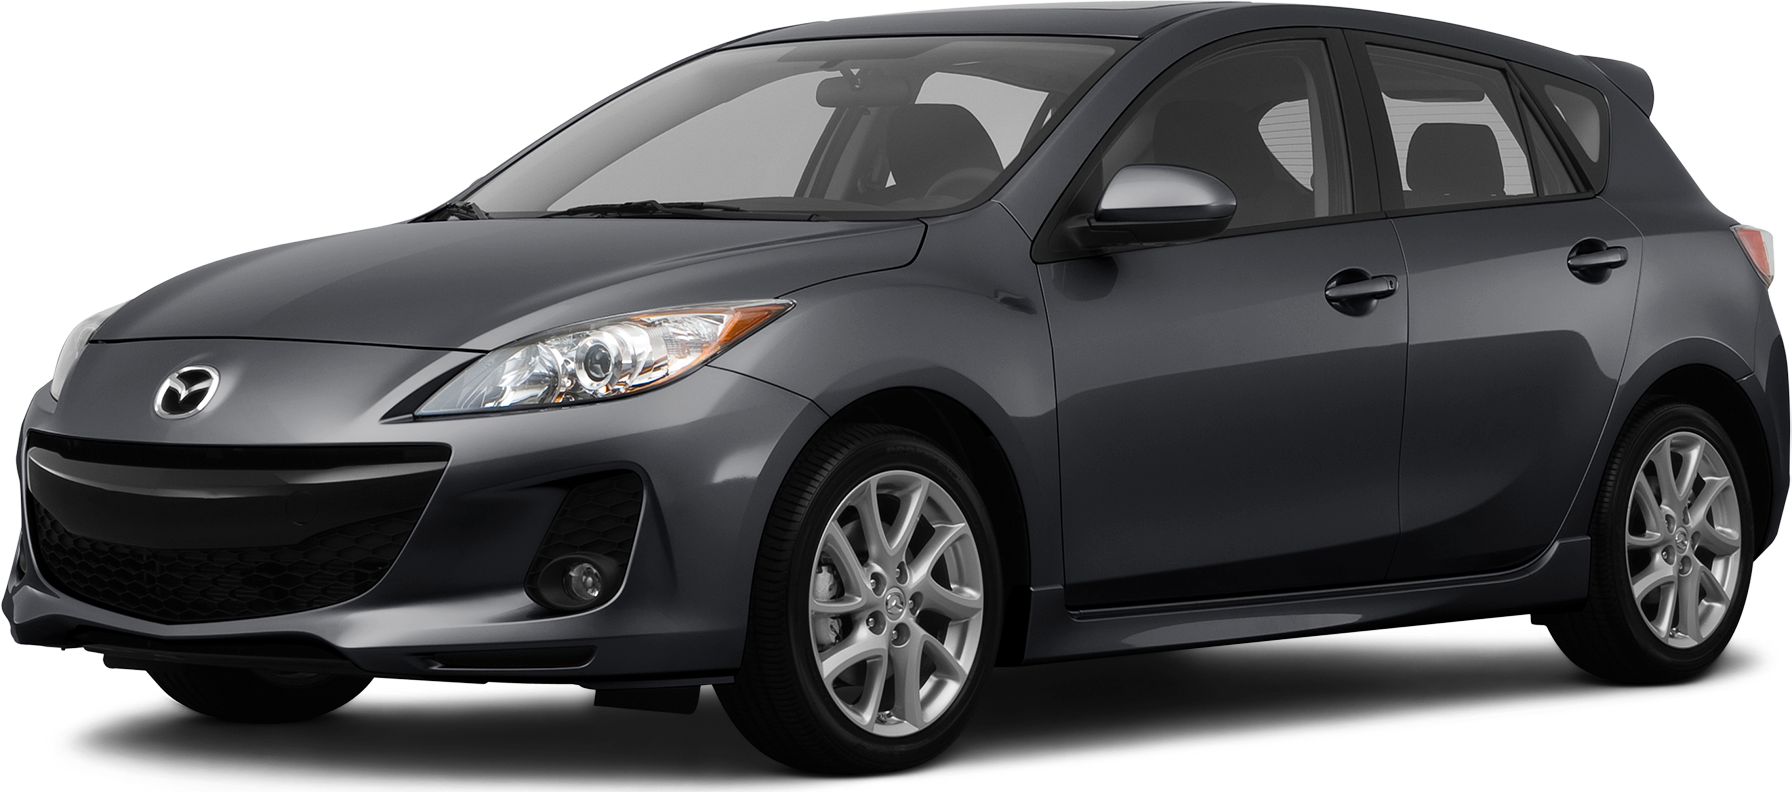 2012 MAZDA MAZDA2 | Pricing, Ratings, Expert Review | Kelley Blue Book